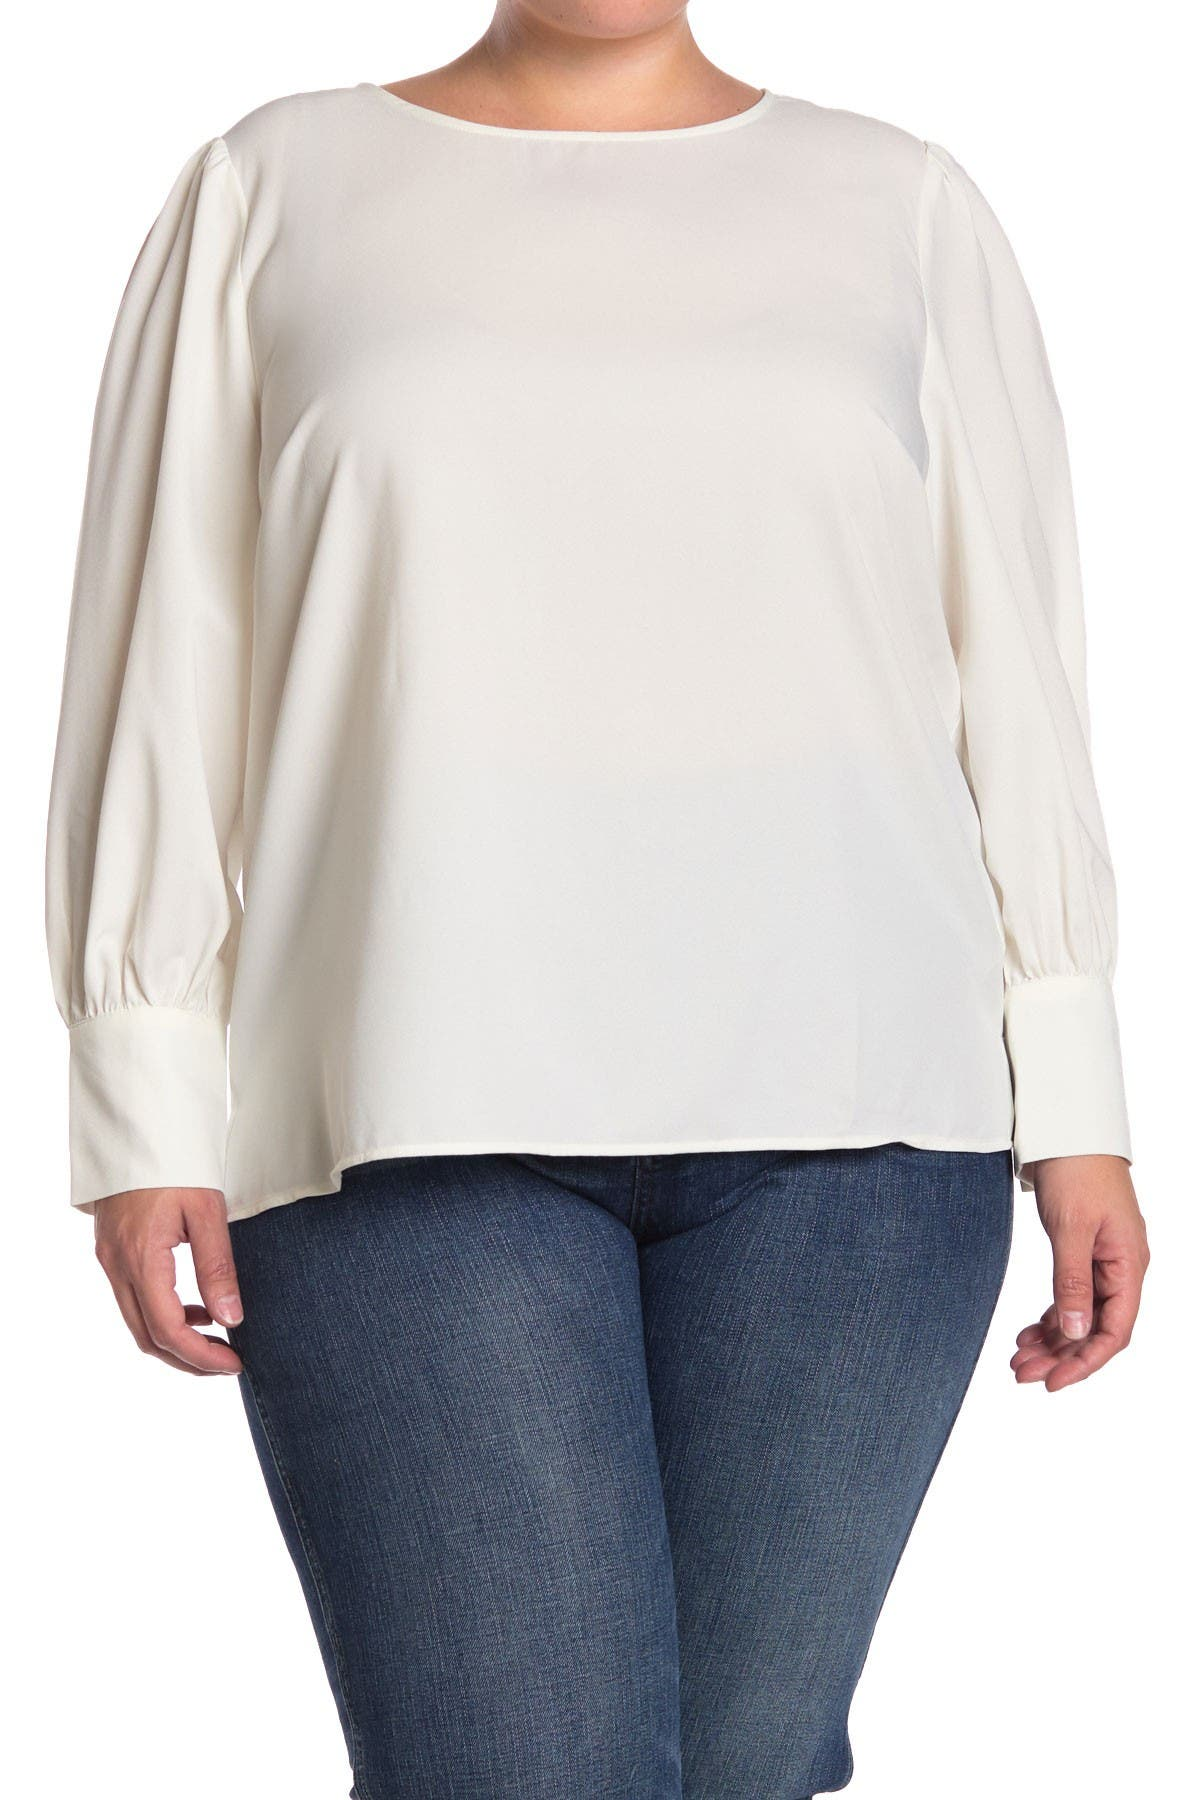 Image of ELOQUII Puff Sleeve Pearl Button Blouse